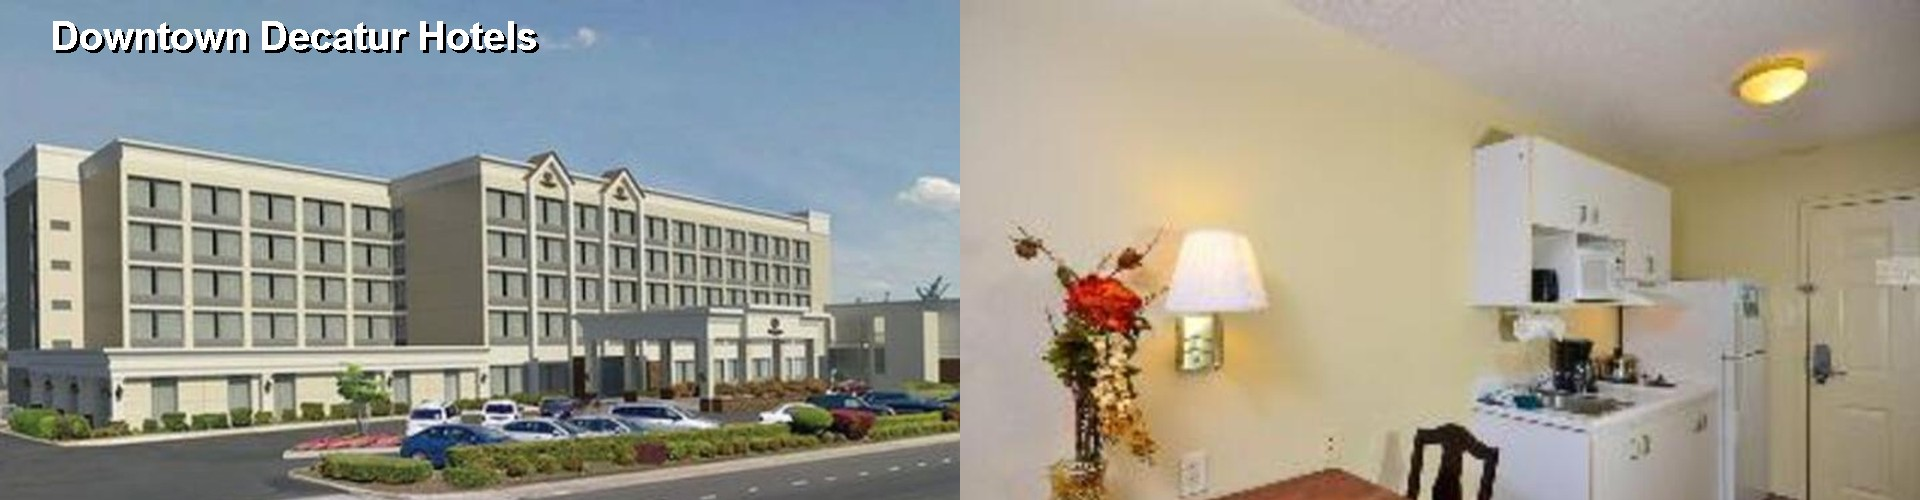 5 Best Hotels near Downtown Decatur